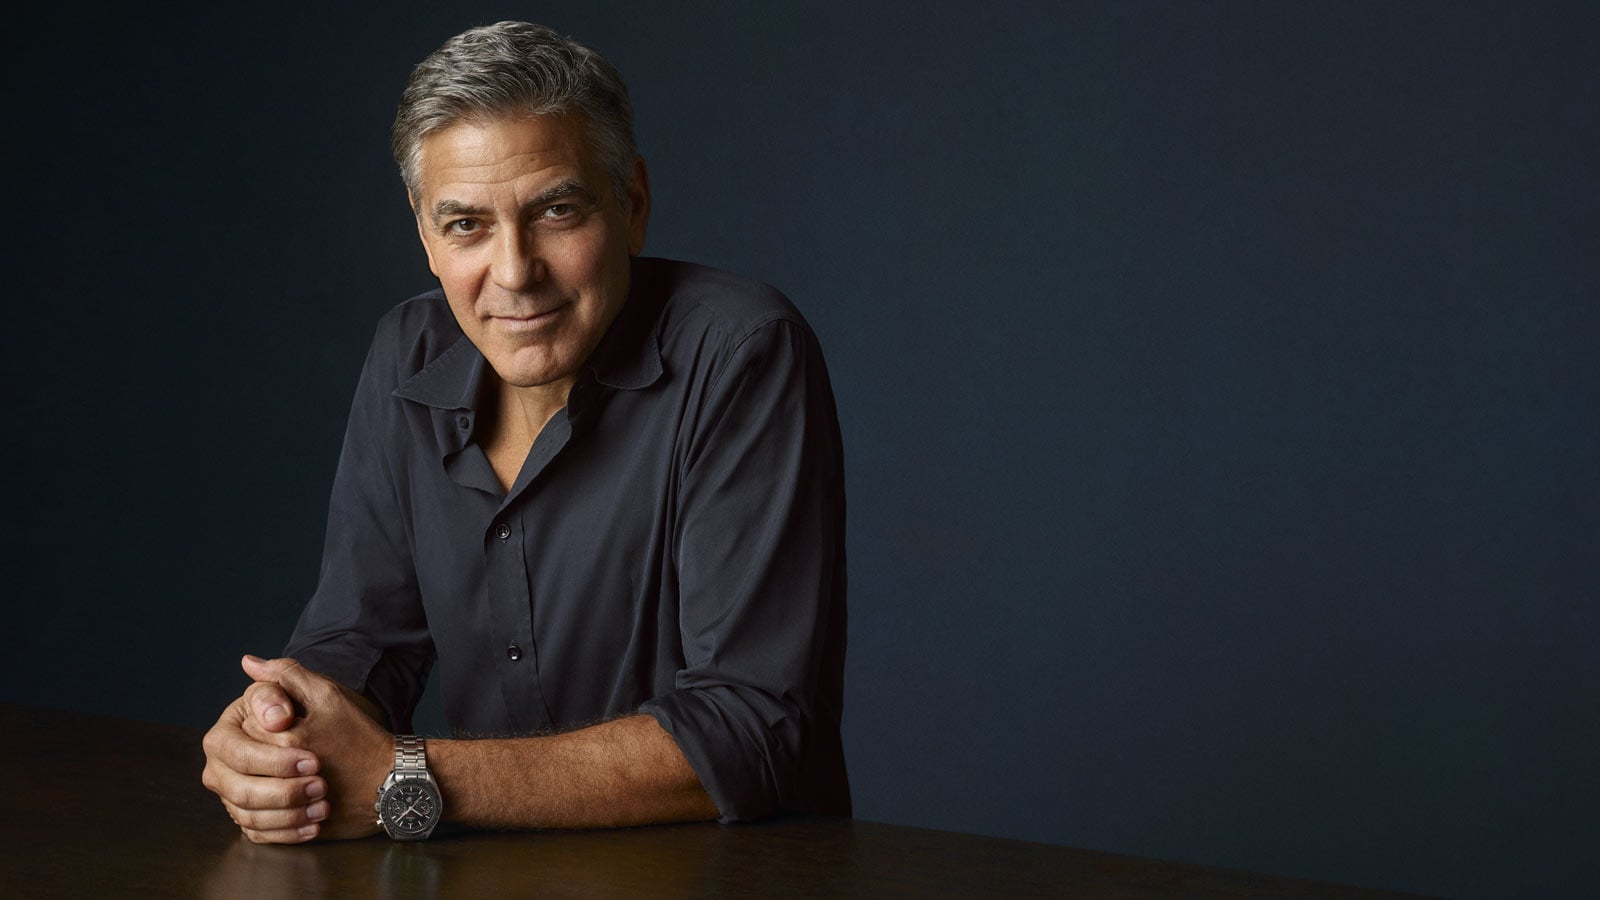 GEORGE CLOONEY AND THE SPEEDMASTER